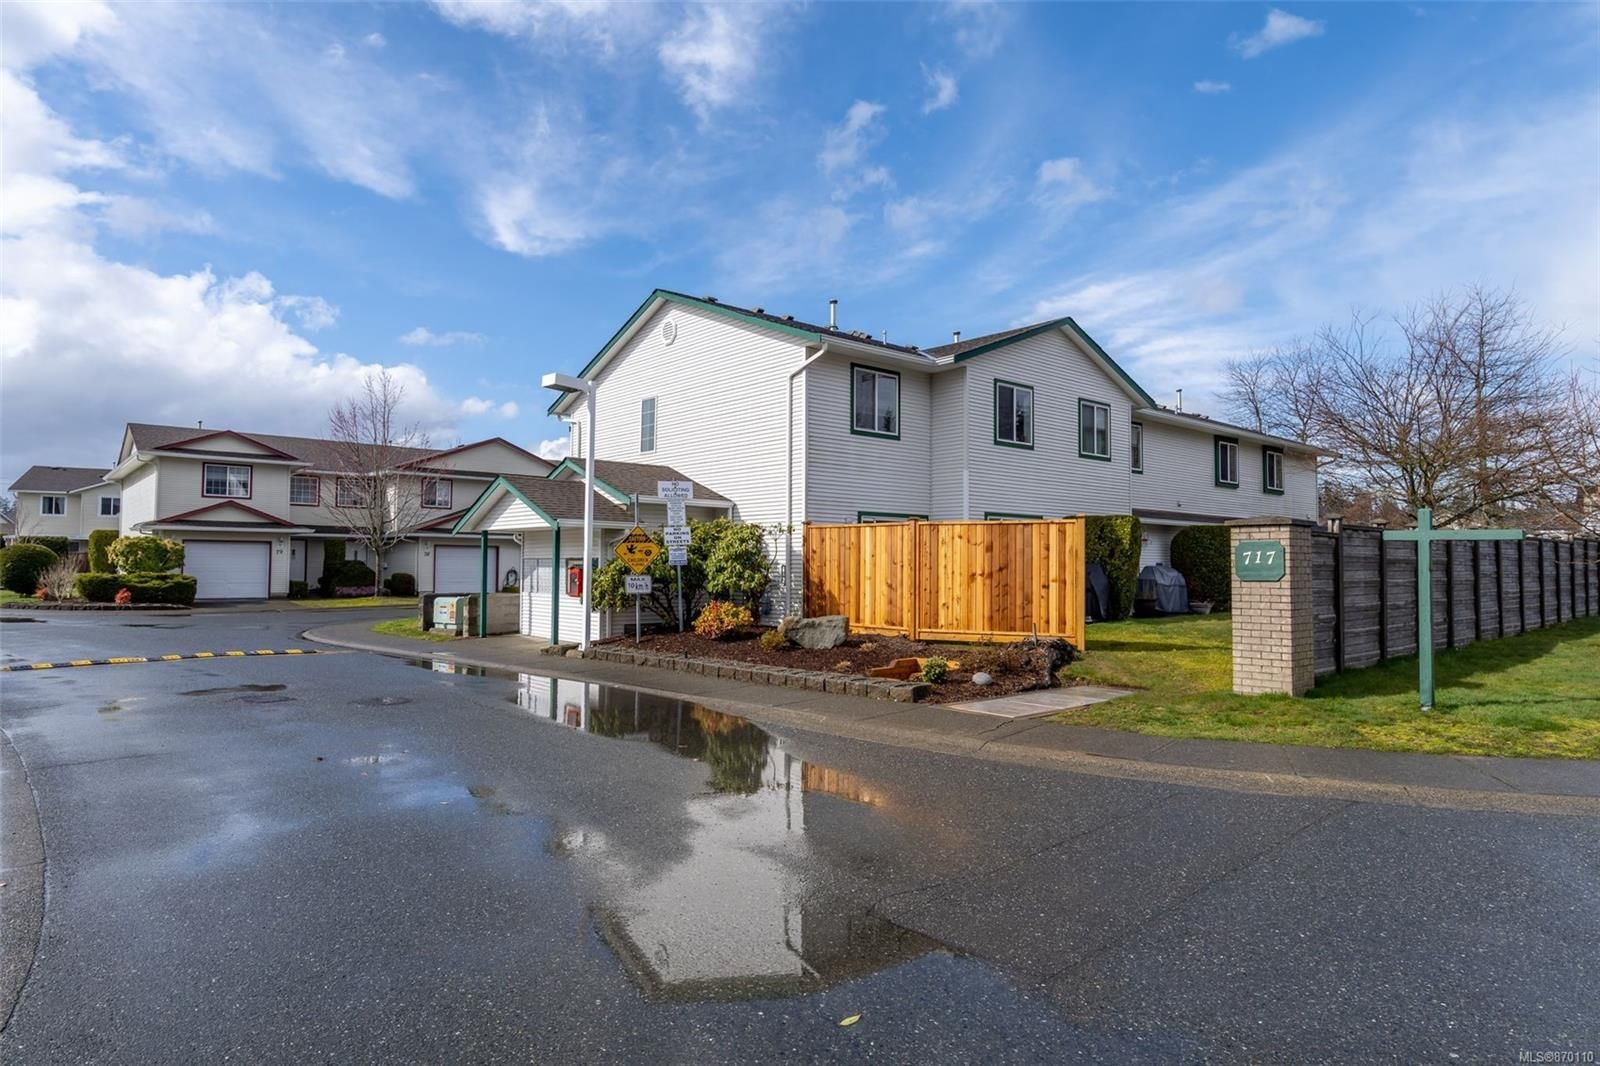 Main Photo: 73 717 Aspen Rd in : CV Comox (Town of) Row/Townhouse for sale (Comox Valley)  : MLS®# 870110